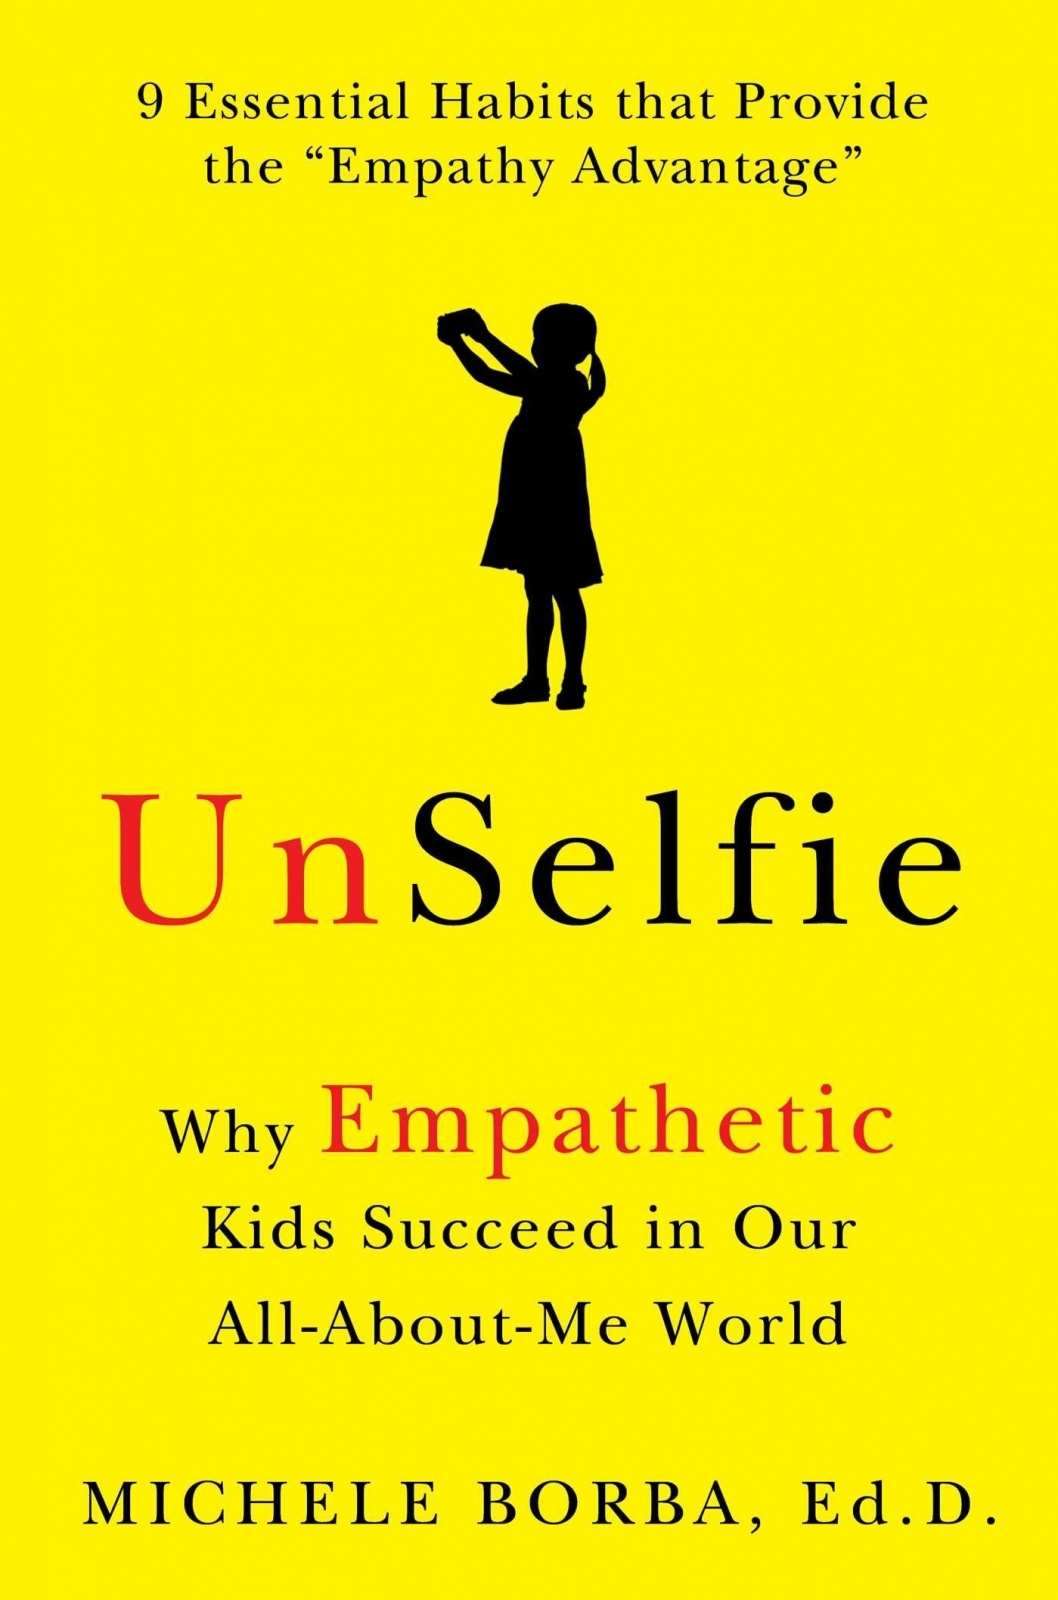 Unselfie: The Surprising Role of Empathy in Preparing Children for Happiness and Success